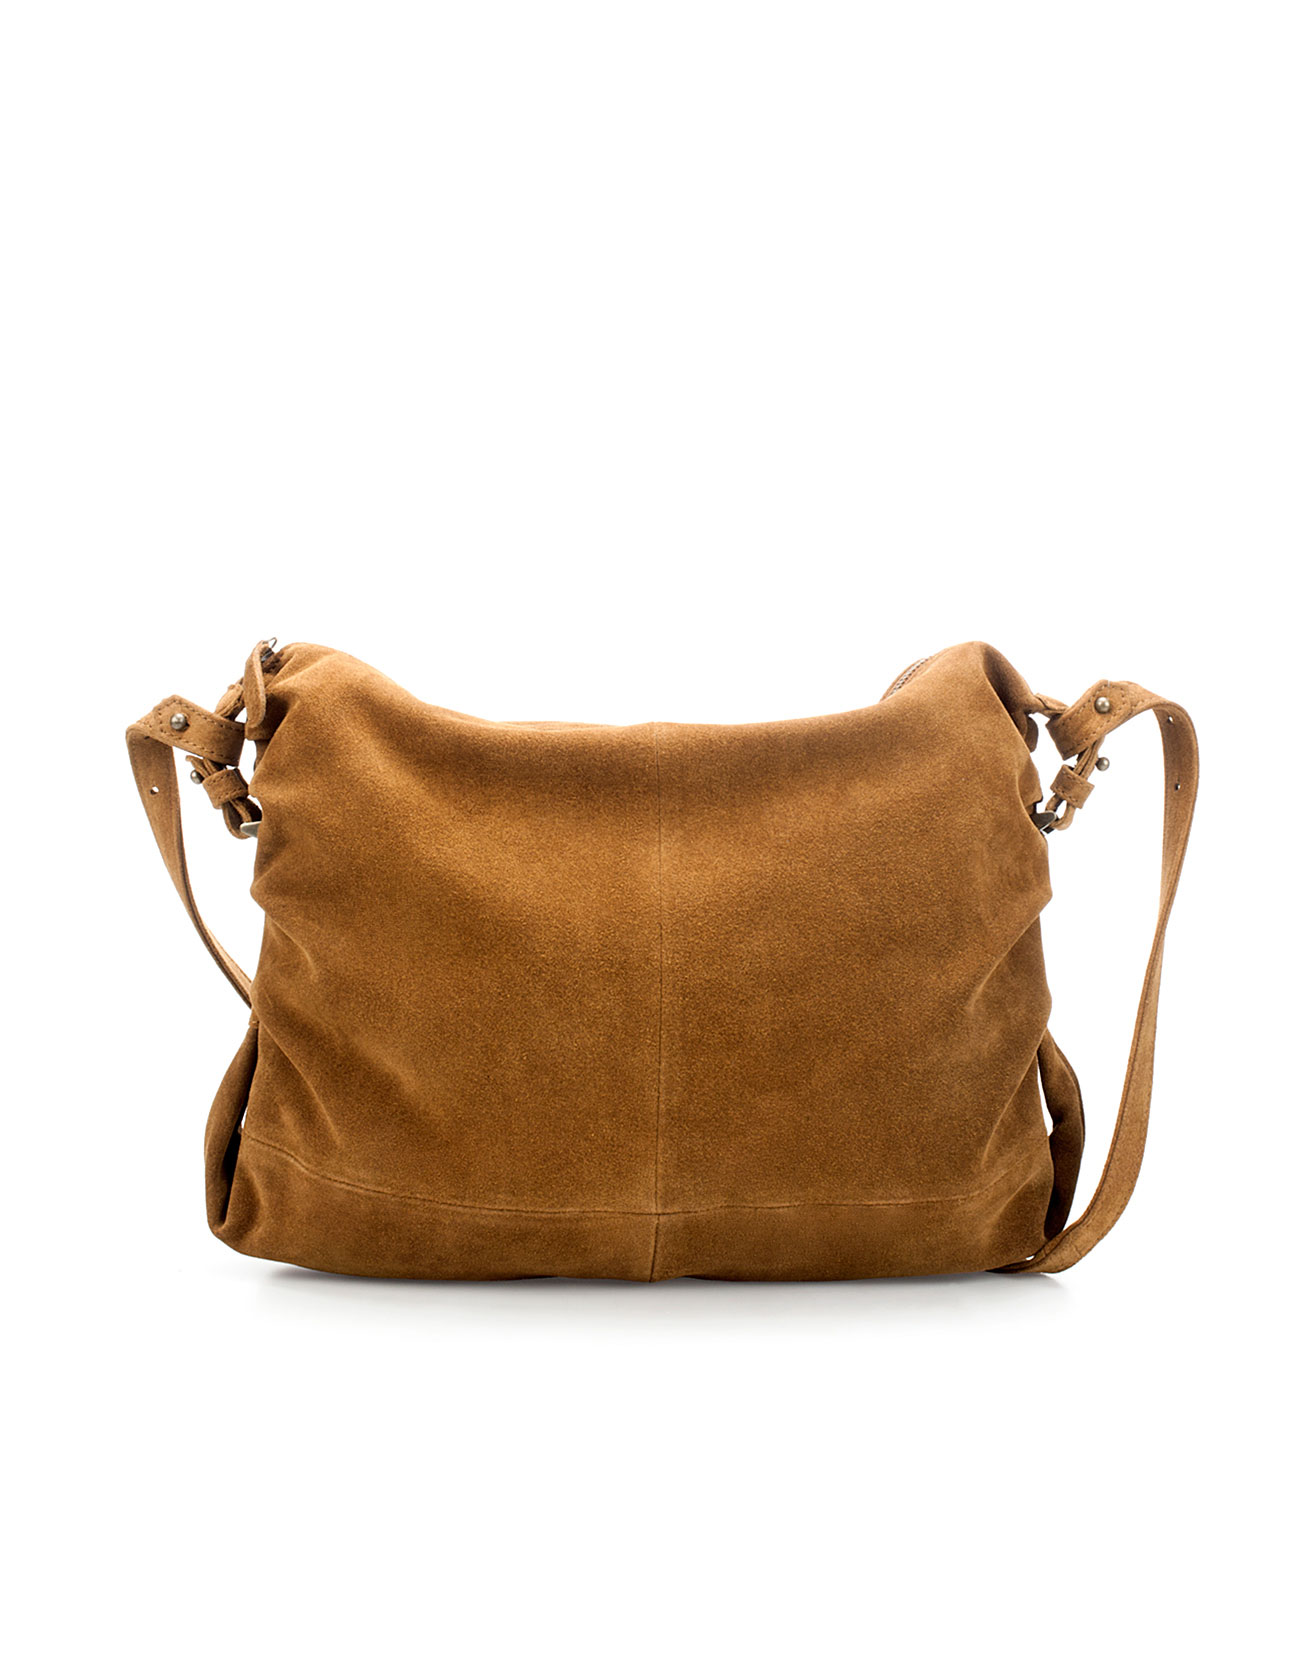 Zara Suede Messenger Bag in Brown | Lyst